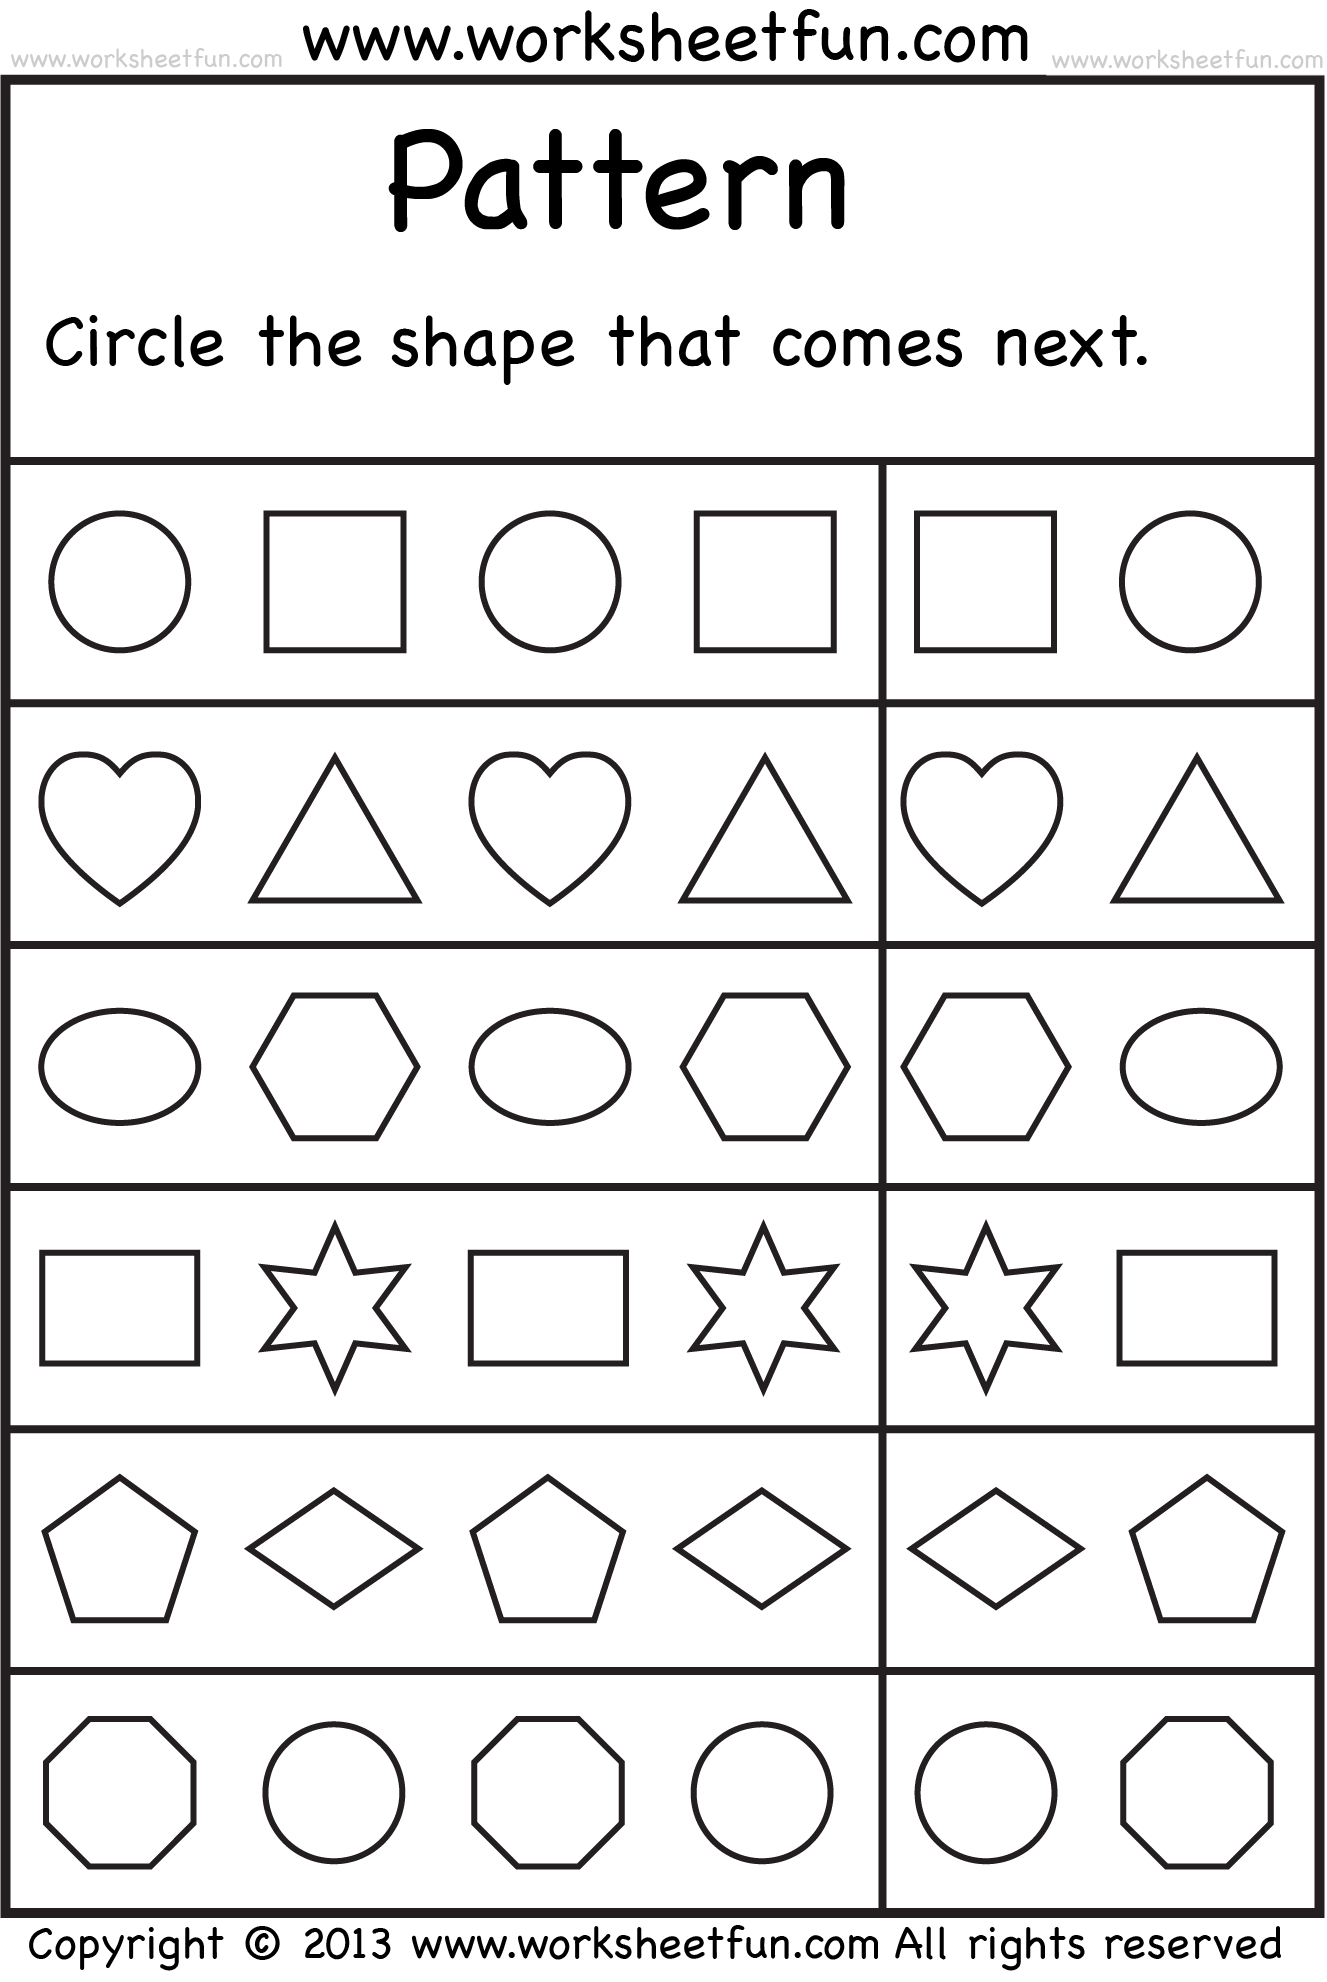 Proatmealus  Nice  Images About School Worksheets On Pinterest  Number Words  With Lovely  Images About School Worksheets On Pinterest  Number Words Alphabet Worksheets And Free Printable Kindergarten Worksheets With Beauteous Yr  Maths Worksheets Also Improper Fractions To Mixed Number Worksheet In Addition Maths Area Worksheets And Maths Worksheets Grade  As Well As Learn Cursive Handwriting Worksheets Additionally Fine Motor Skills Worksheets Ks From Pinterestcom With Proatmealus  Lovely  Images About School Worksheets On Pinterest  Number Words  With Beauteous  Images About School Worksheets On Pinterest  Number Words Alphabet Worksheets And Free Printable Kindergarten Worksheets And Nice Yr  Maths Worksheets Also Improper Fractions To Mixed Number Worksheet In Addition Maths Area Worksheets From Pinterestcom